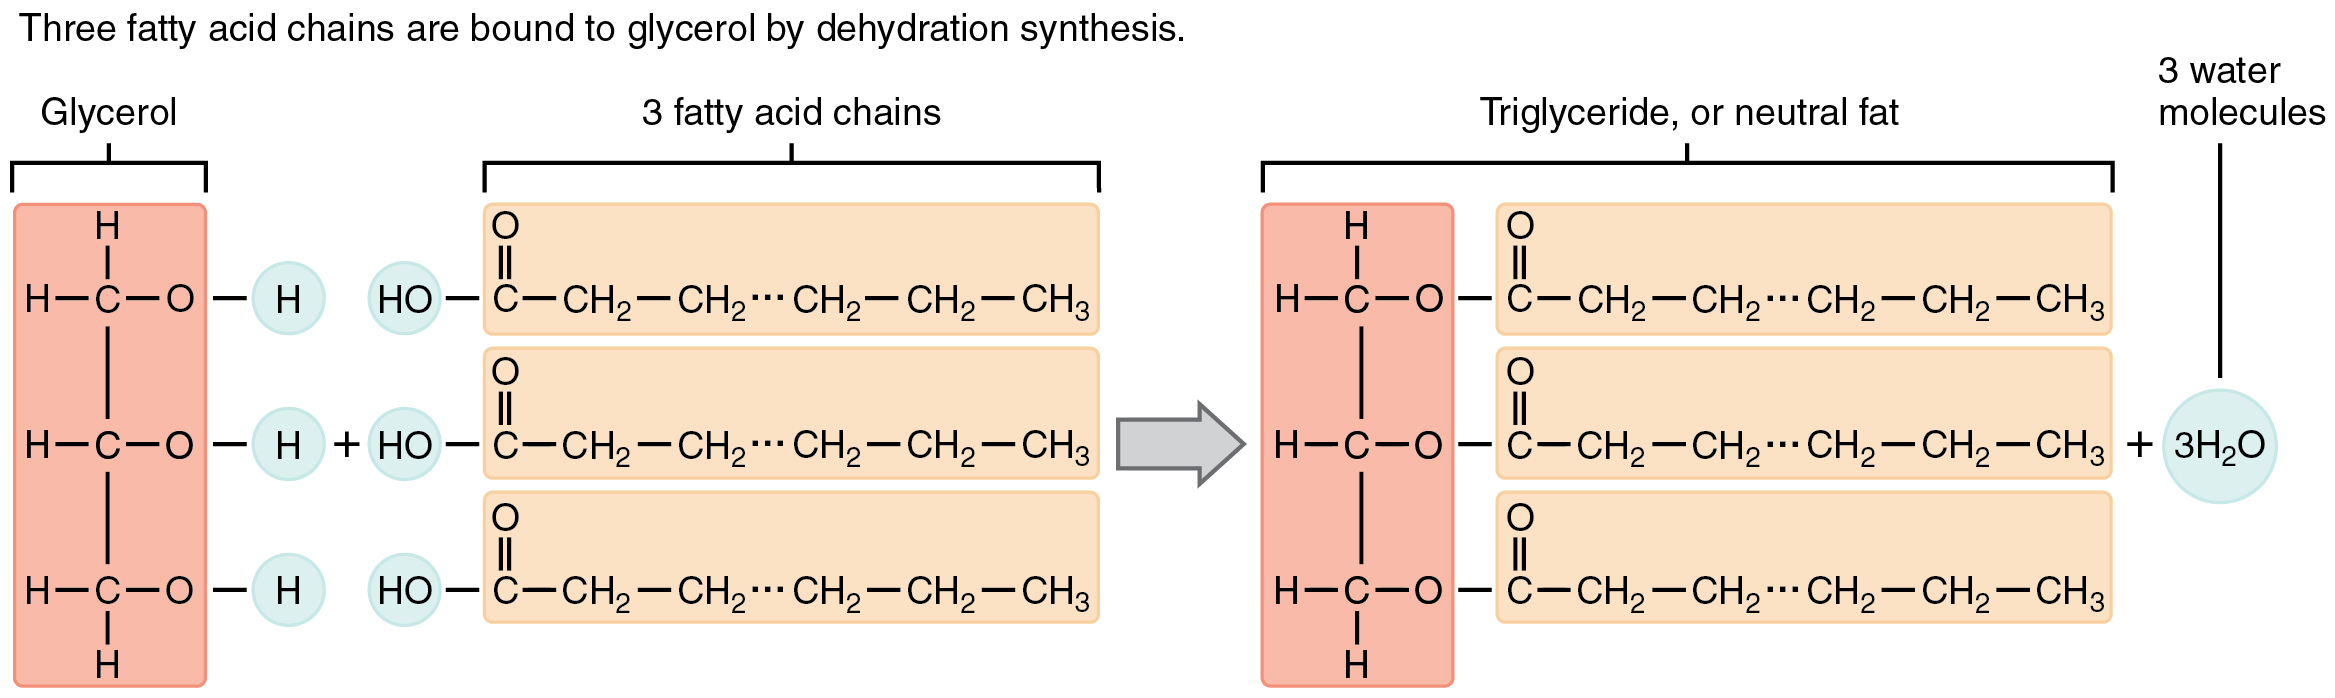 components needed to synthesise a triglyceride Butanone occurs as a natural product it is made by some trees and found in some fruits and vegetables in small amounts it is also released.